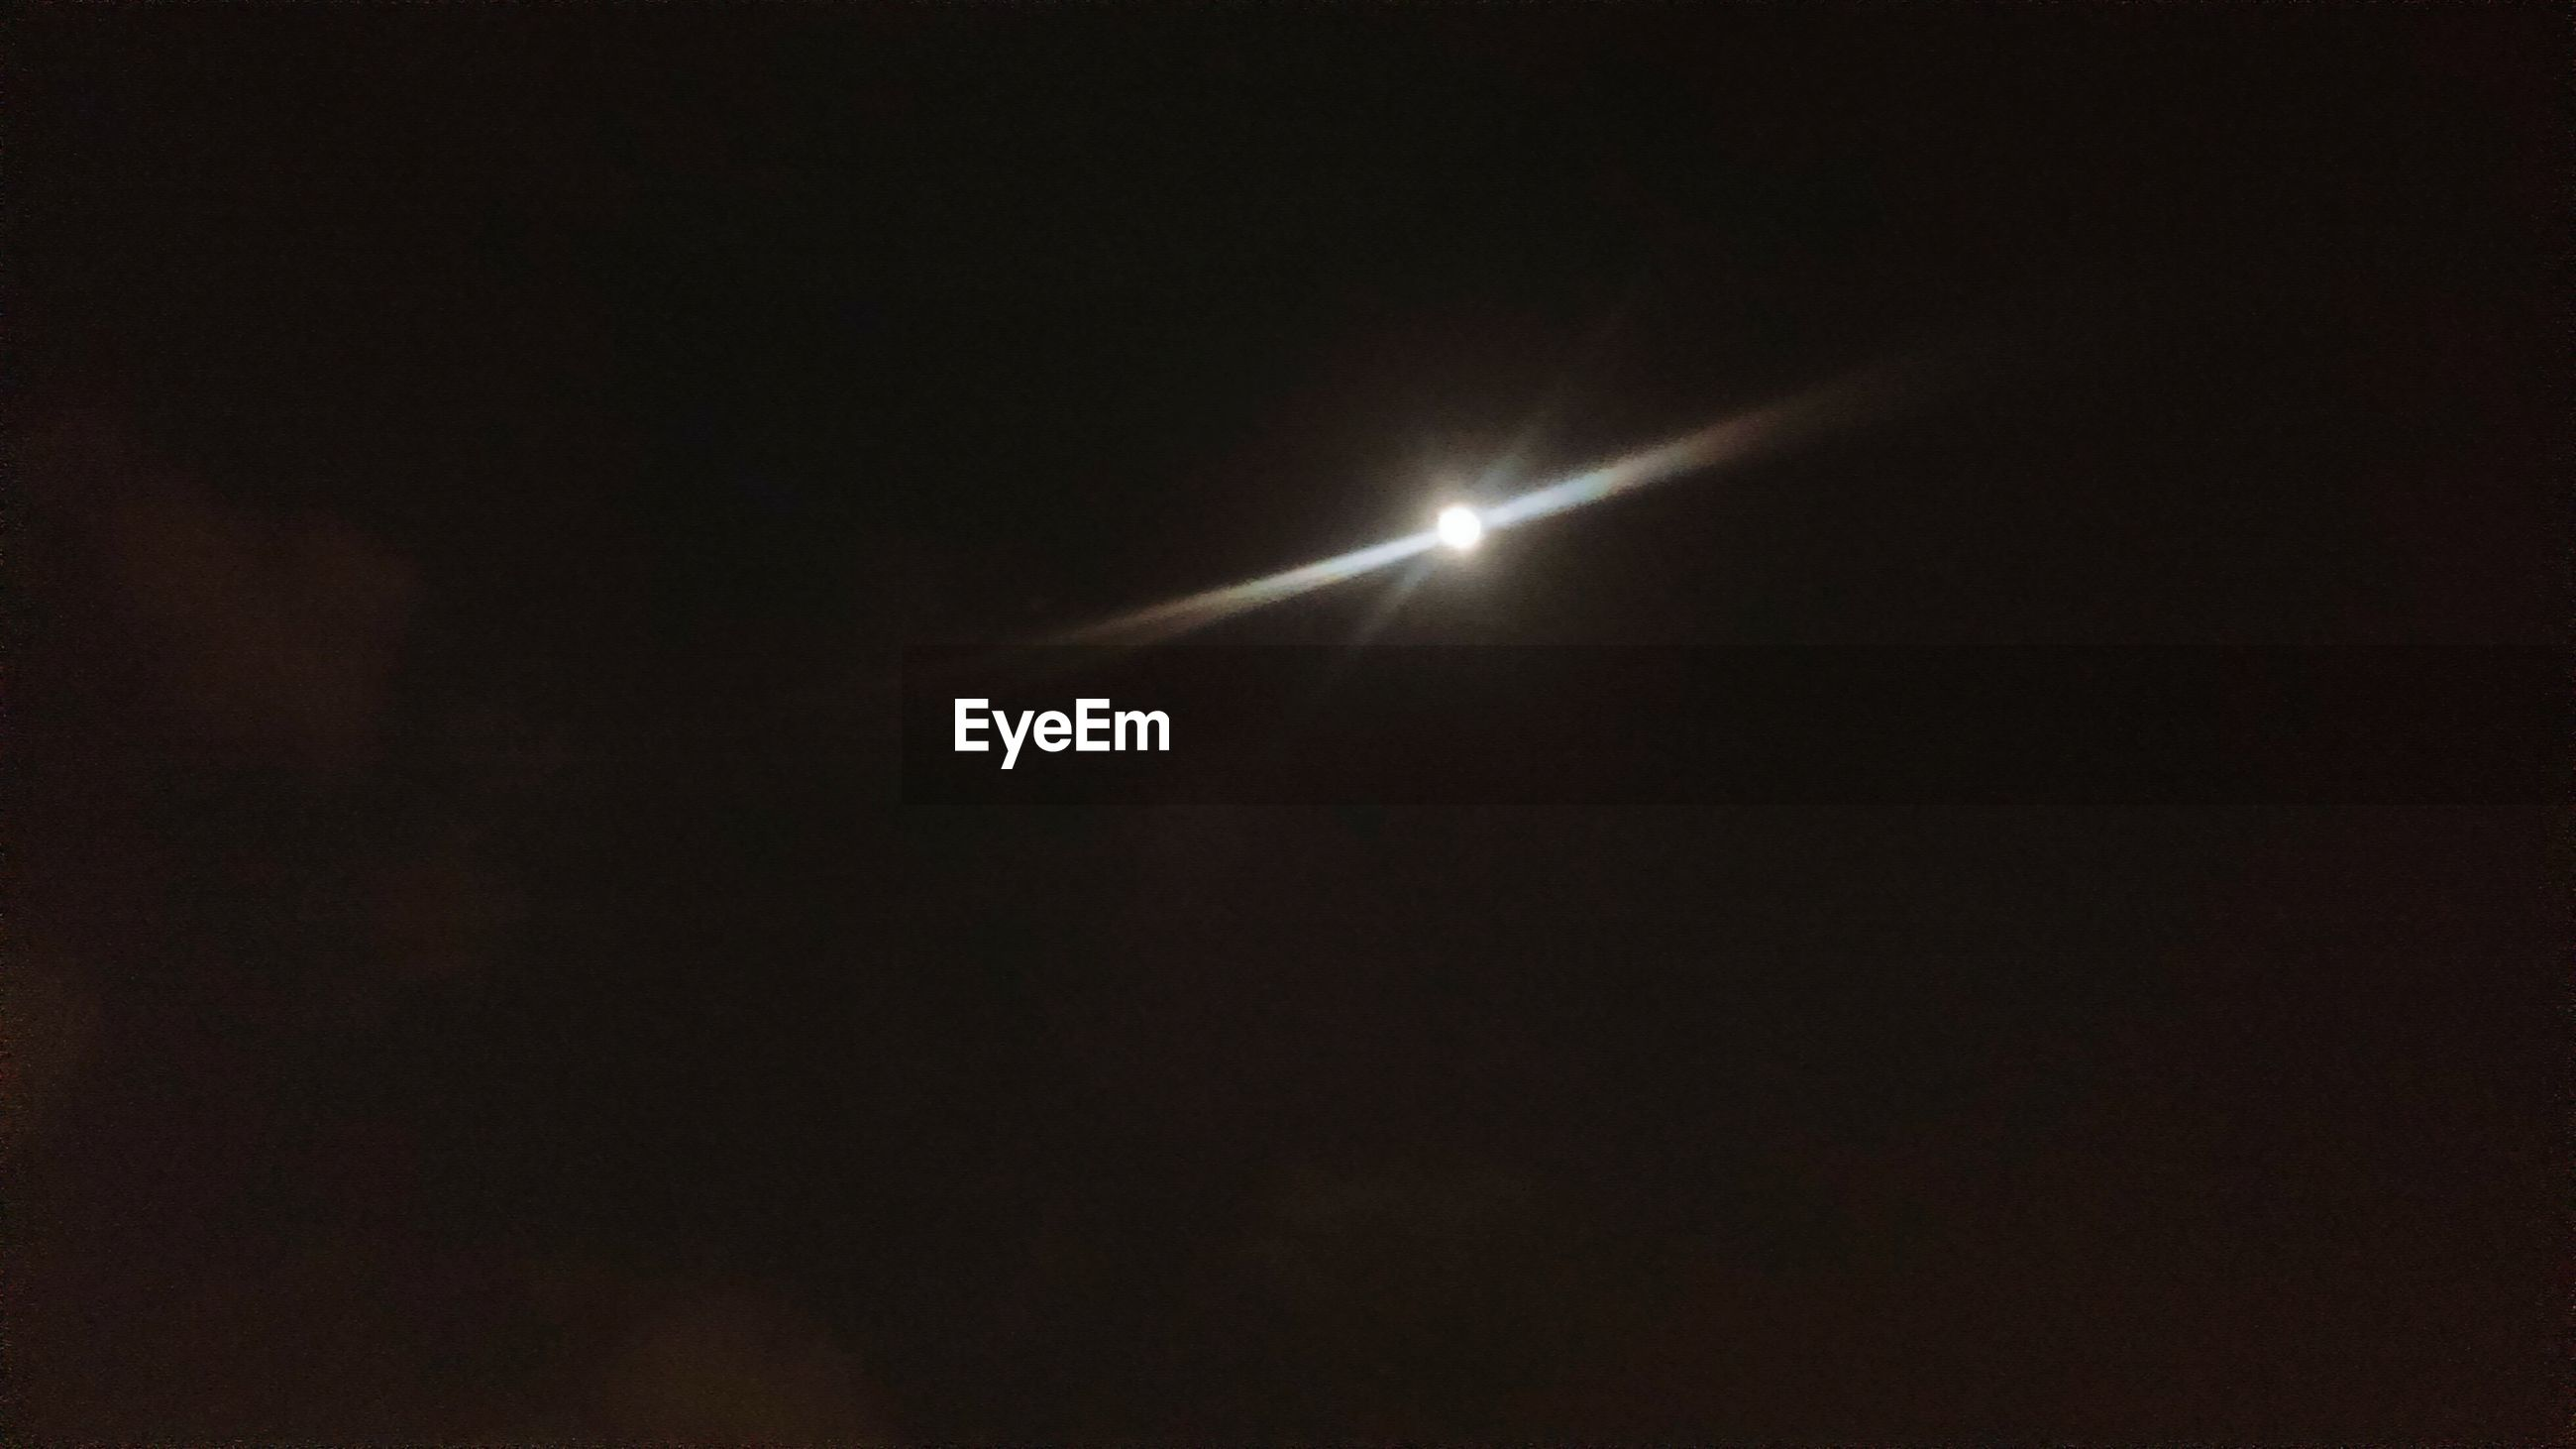 night, low angle view, copy space, moon, sky, scenics, beauty in nature, dark, tranquility, illuminated, tranquil scene, nature, clear sky, silhouette, outdoors, idyllic, no people, glowing, light - natural phenomenon, street light